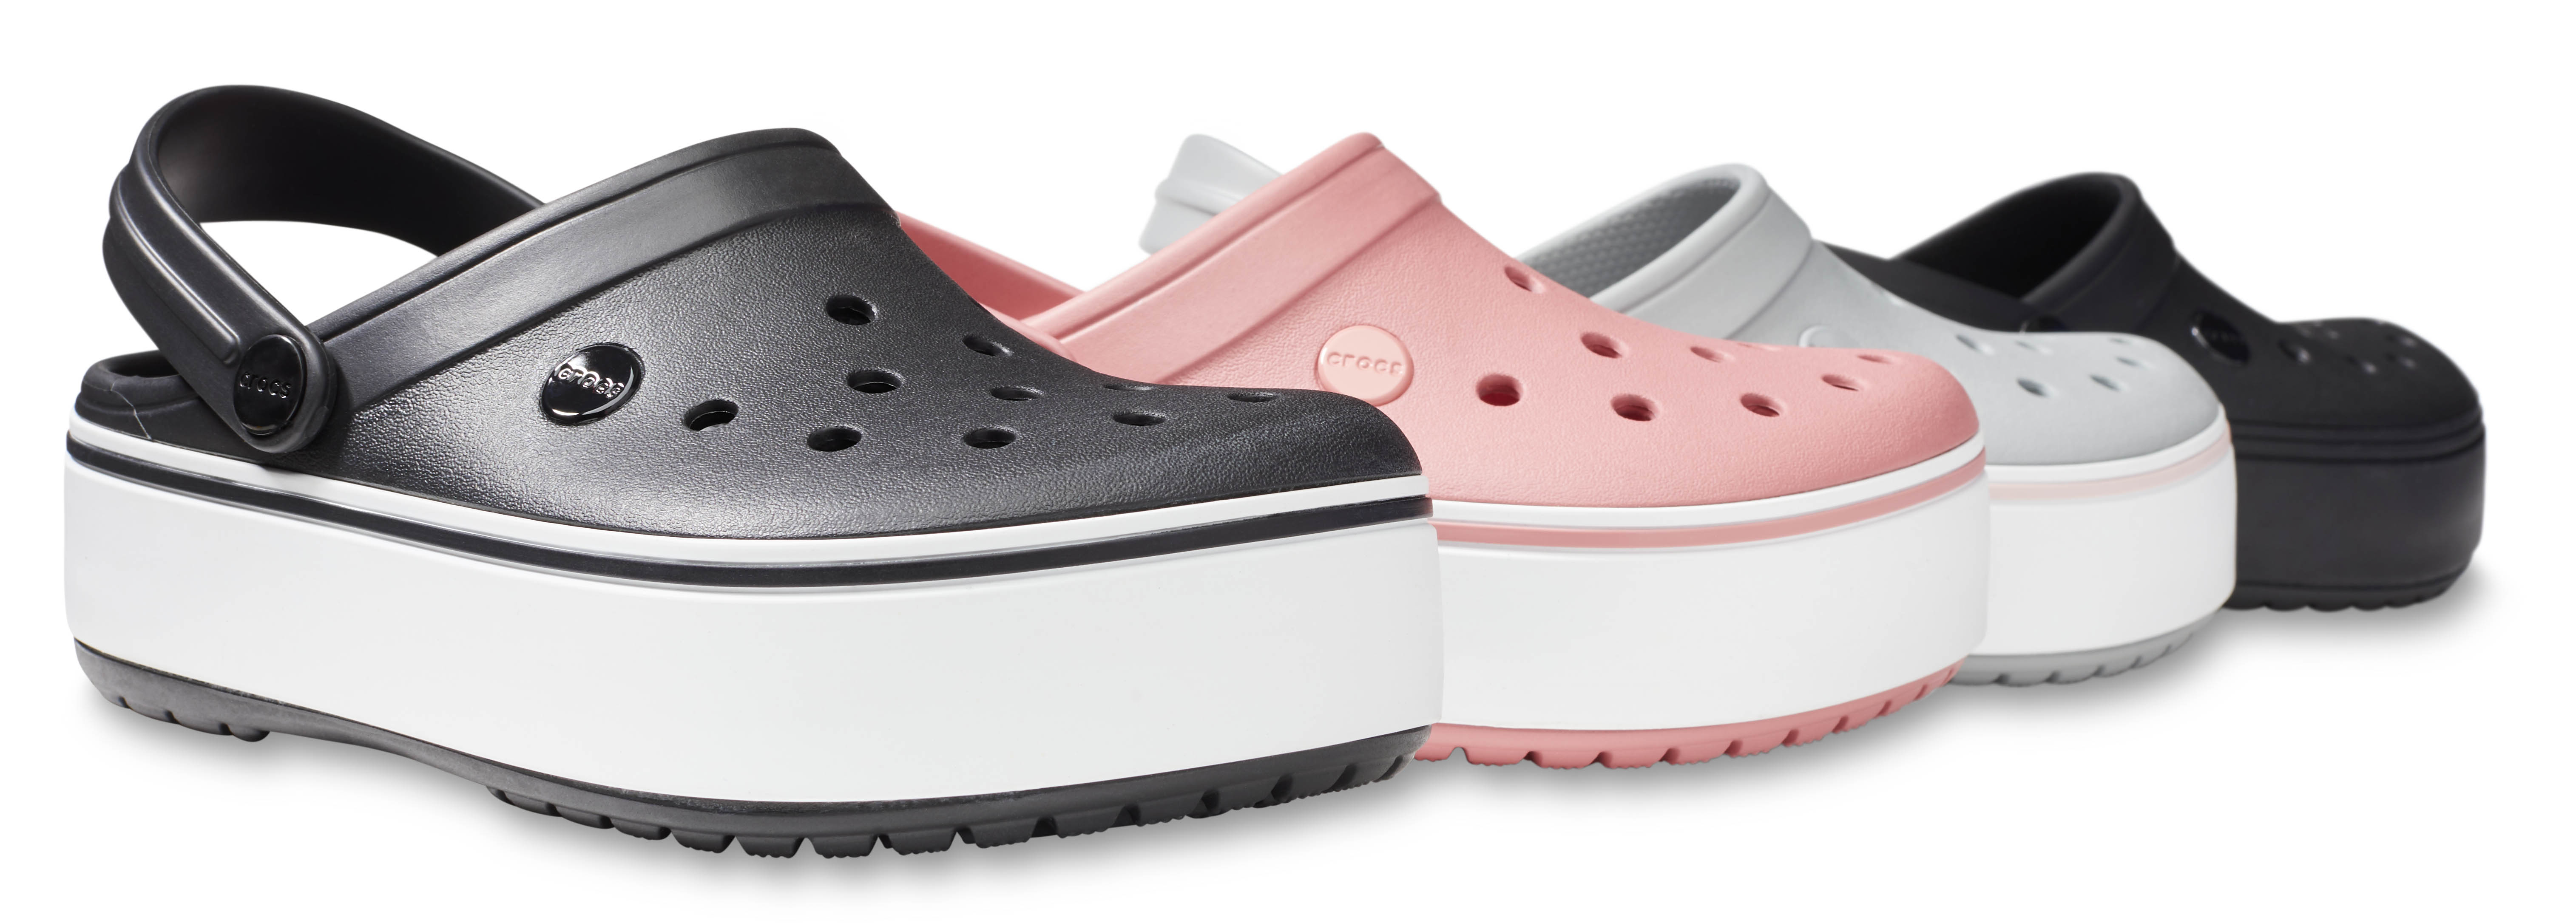 b2841f9f39 Crocs Elevates Its Comfort with New Crocband™ Platform Clog Collection for  Fall 2018 | Business Wire